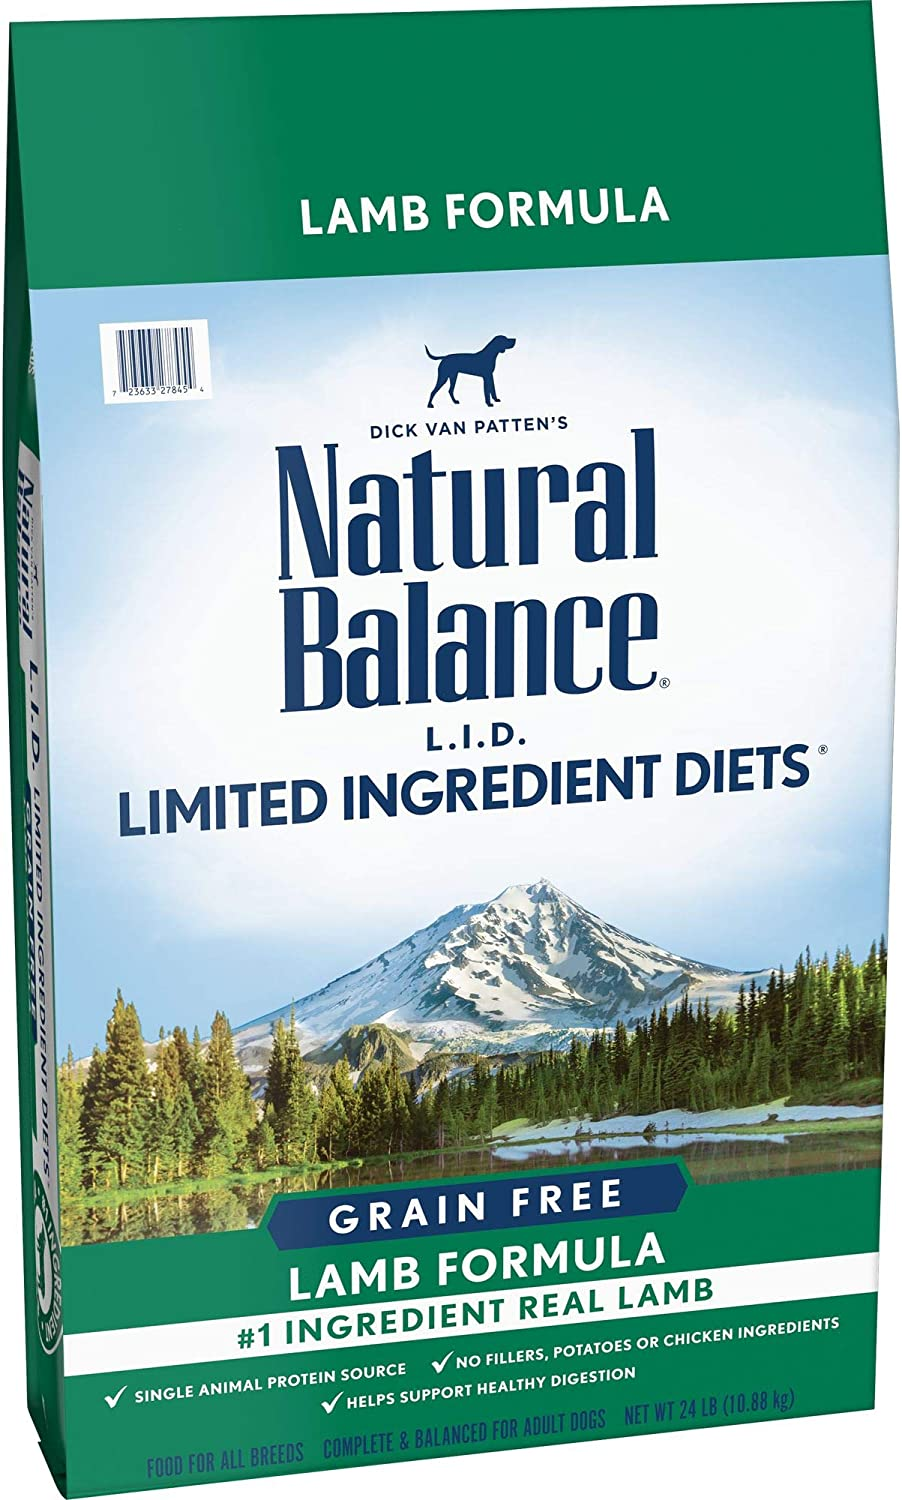 Natural Balance L.I.D. Limited Ingredient Diets Dry Dog Food, Lamb Formula, 24 Pounds, Grain Free